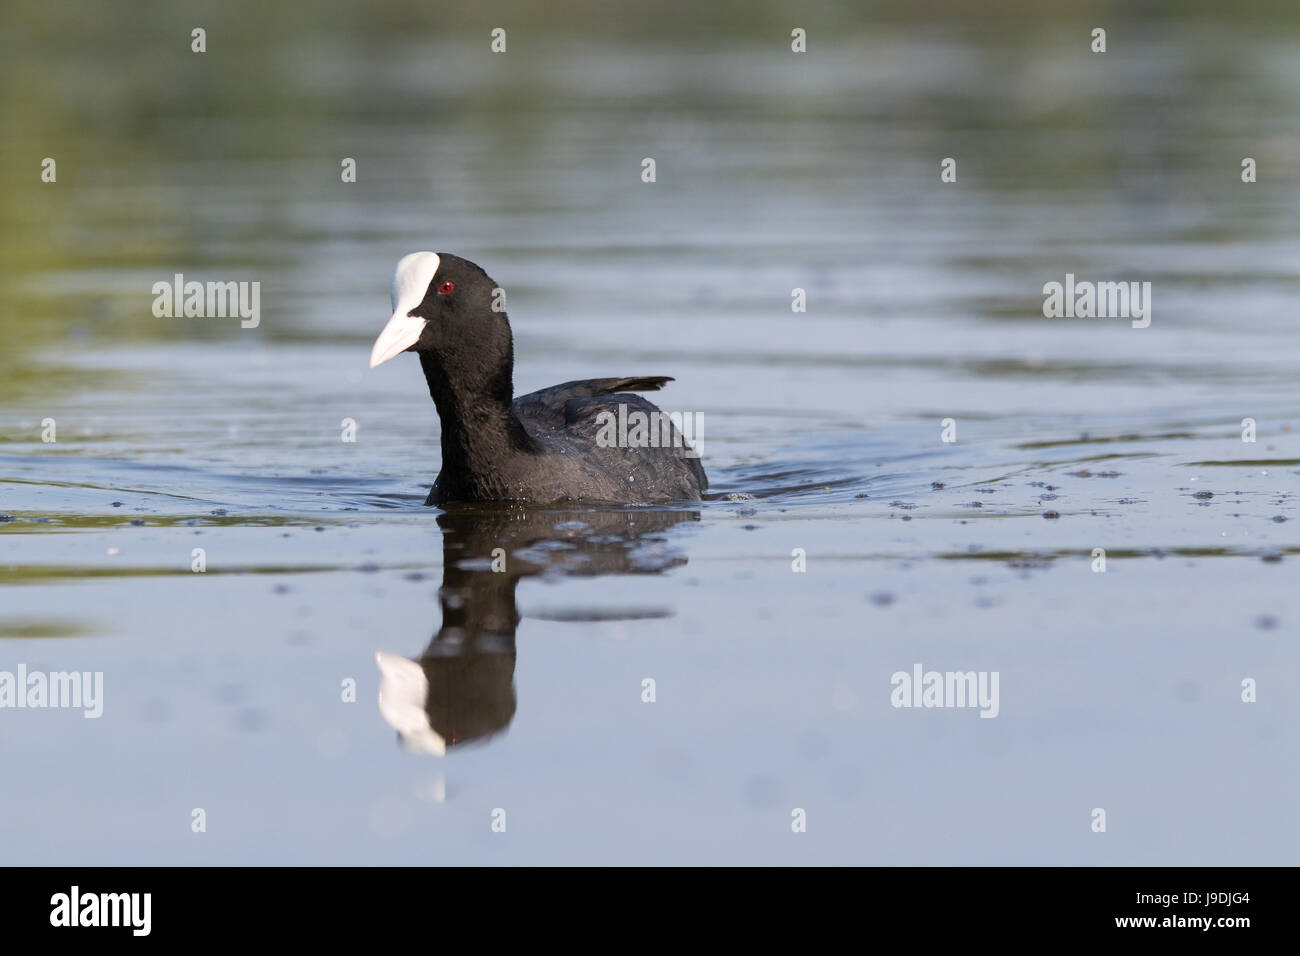 Coot looking angry - Stock Image